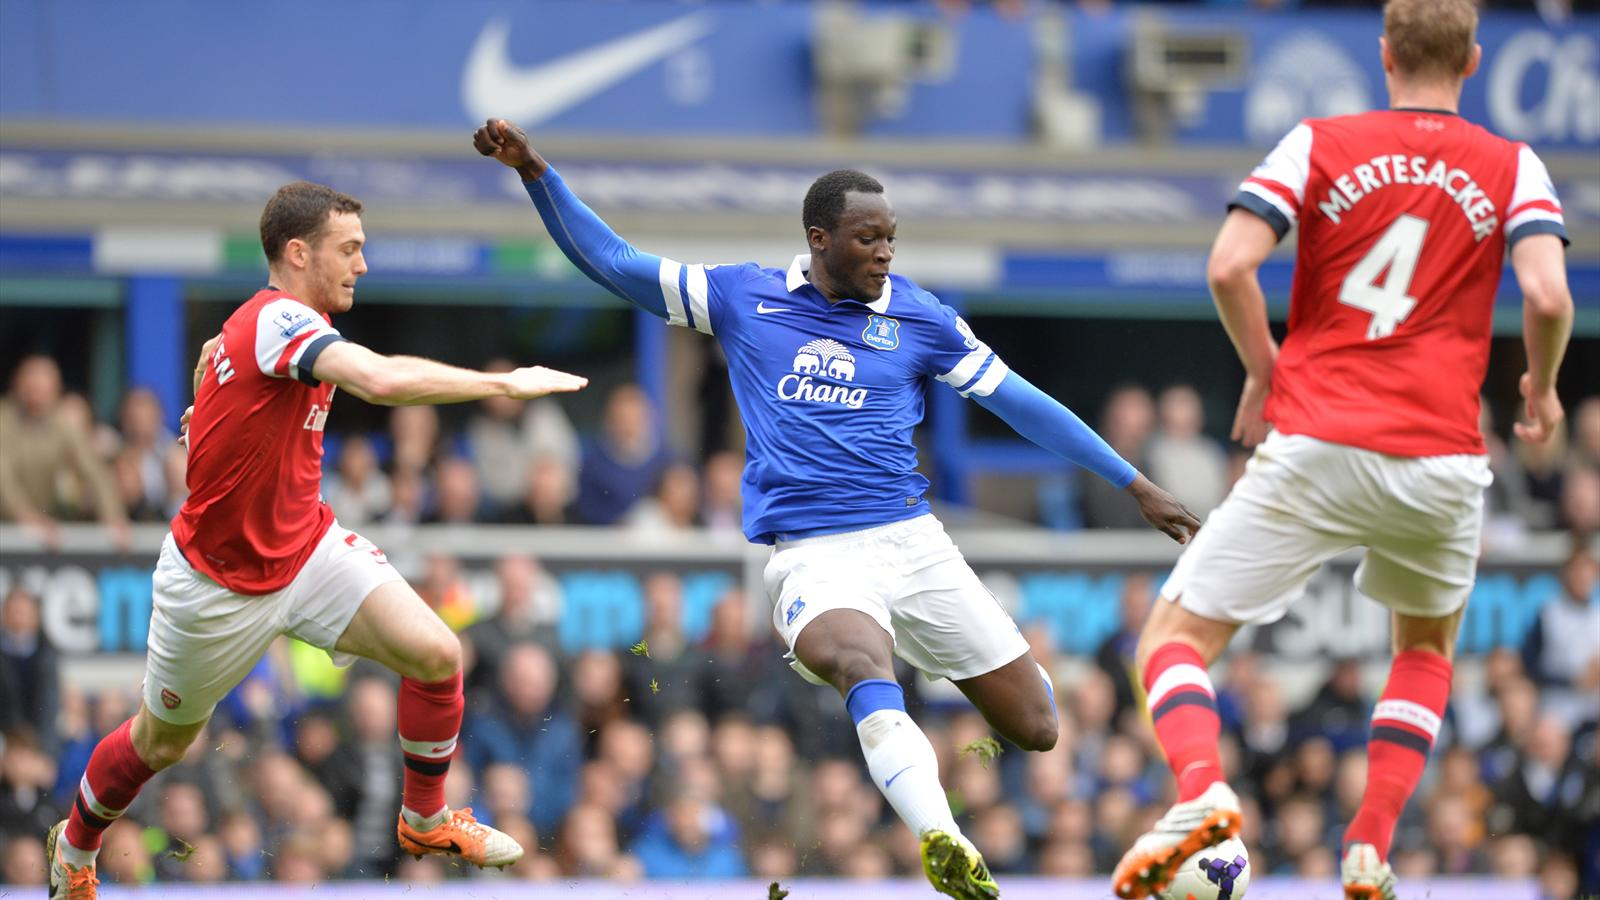 Everton's Belgian striker Romelu Lukaku (C) scores their second goal during the English Premier League football match between Everton and Arsenal, 2014